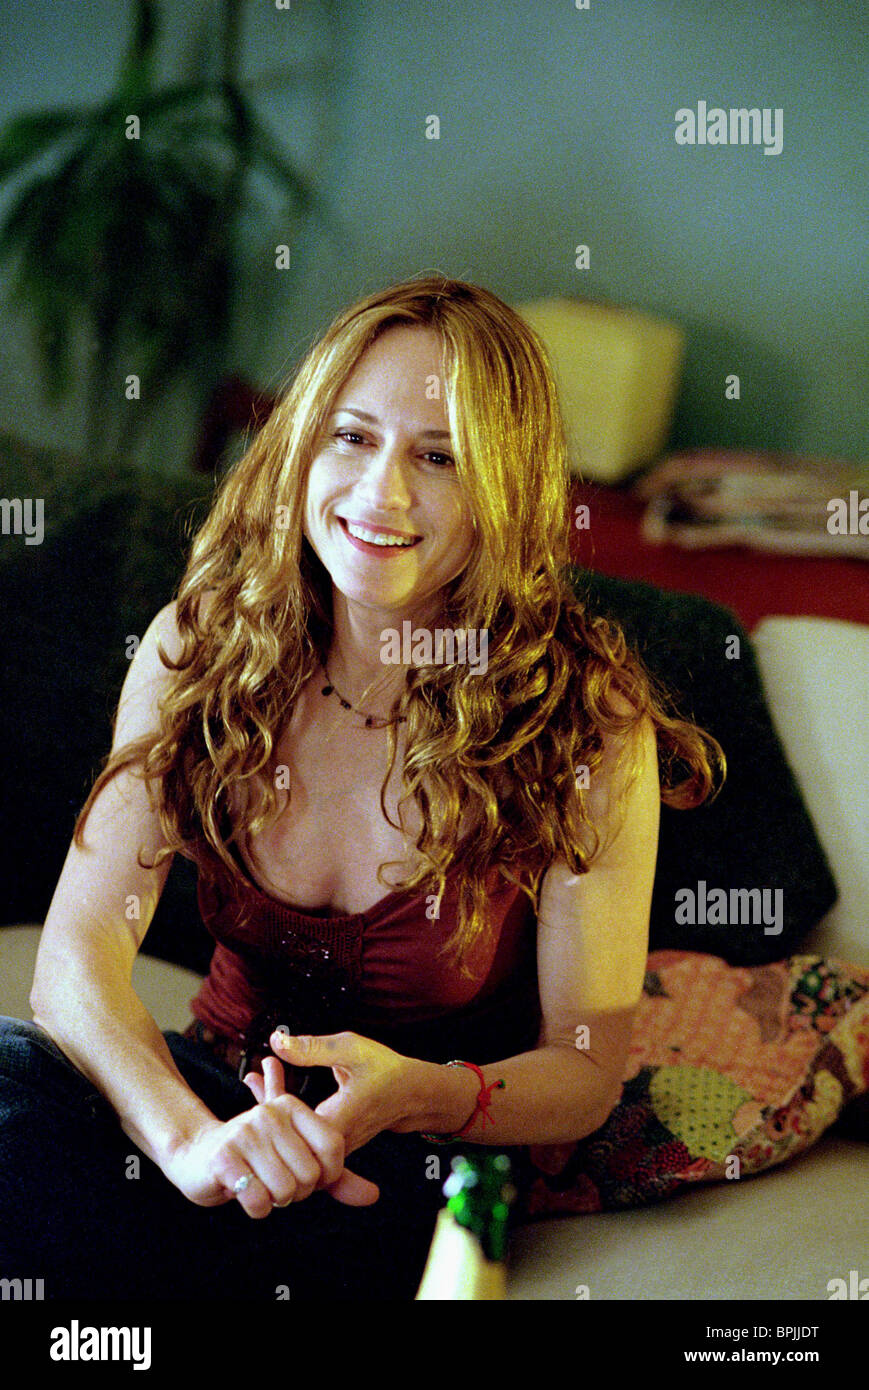 HOLLY HUNTER trece (2003) Imagen De Stock